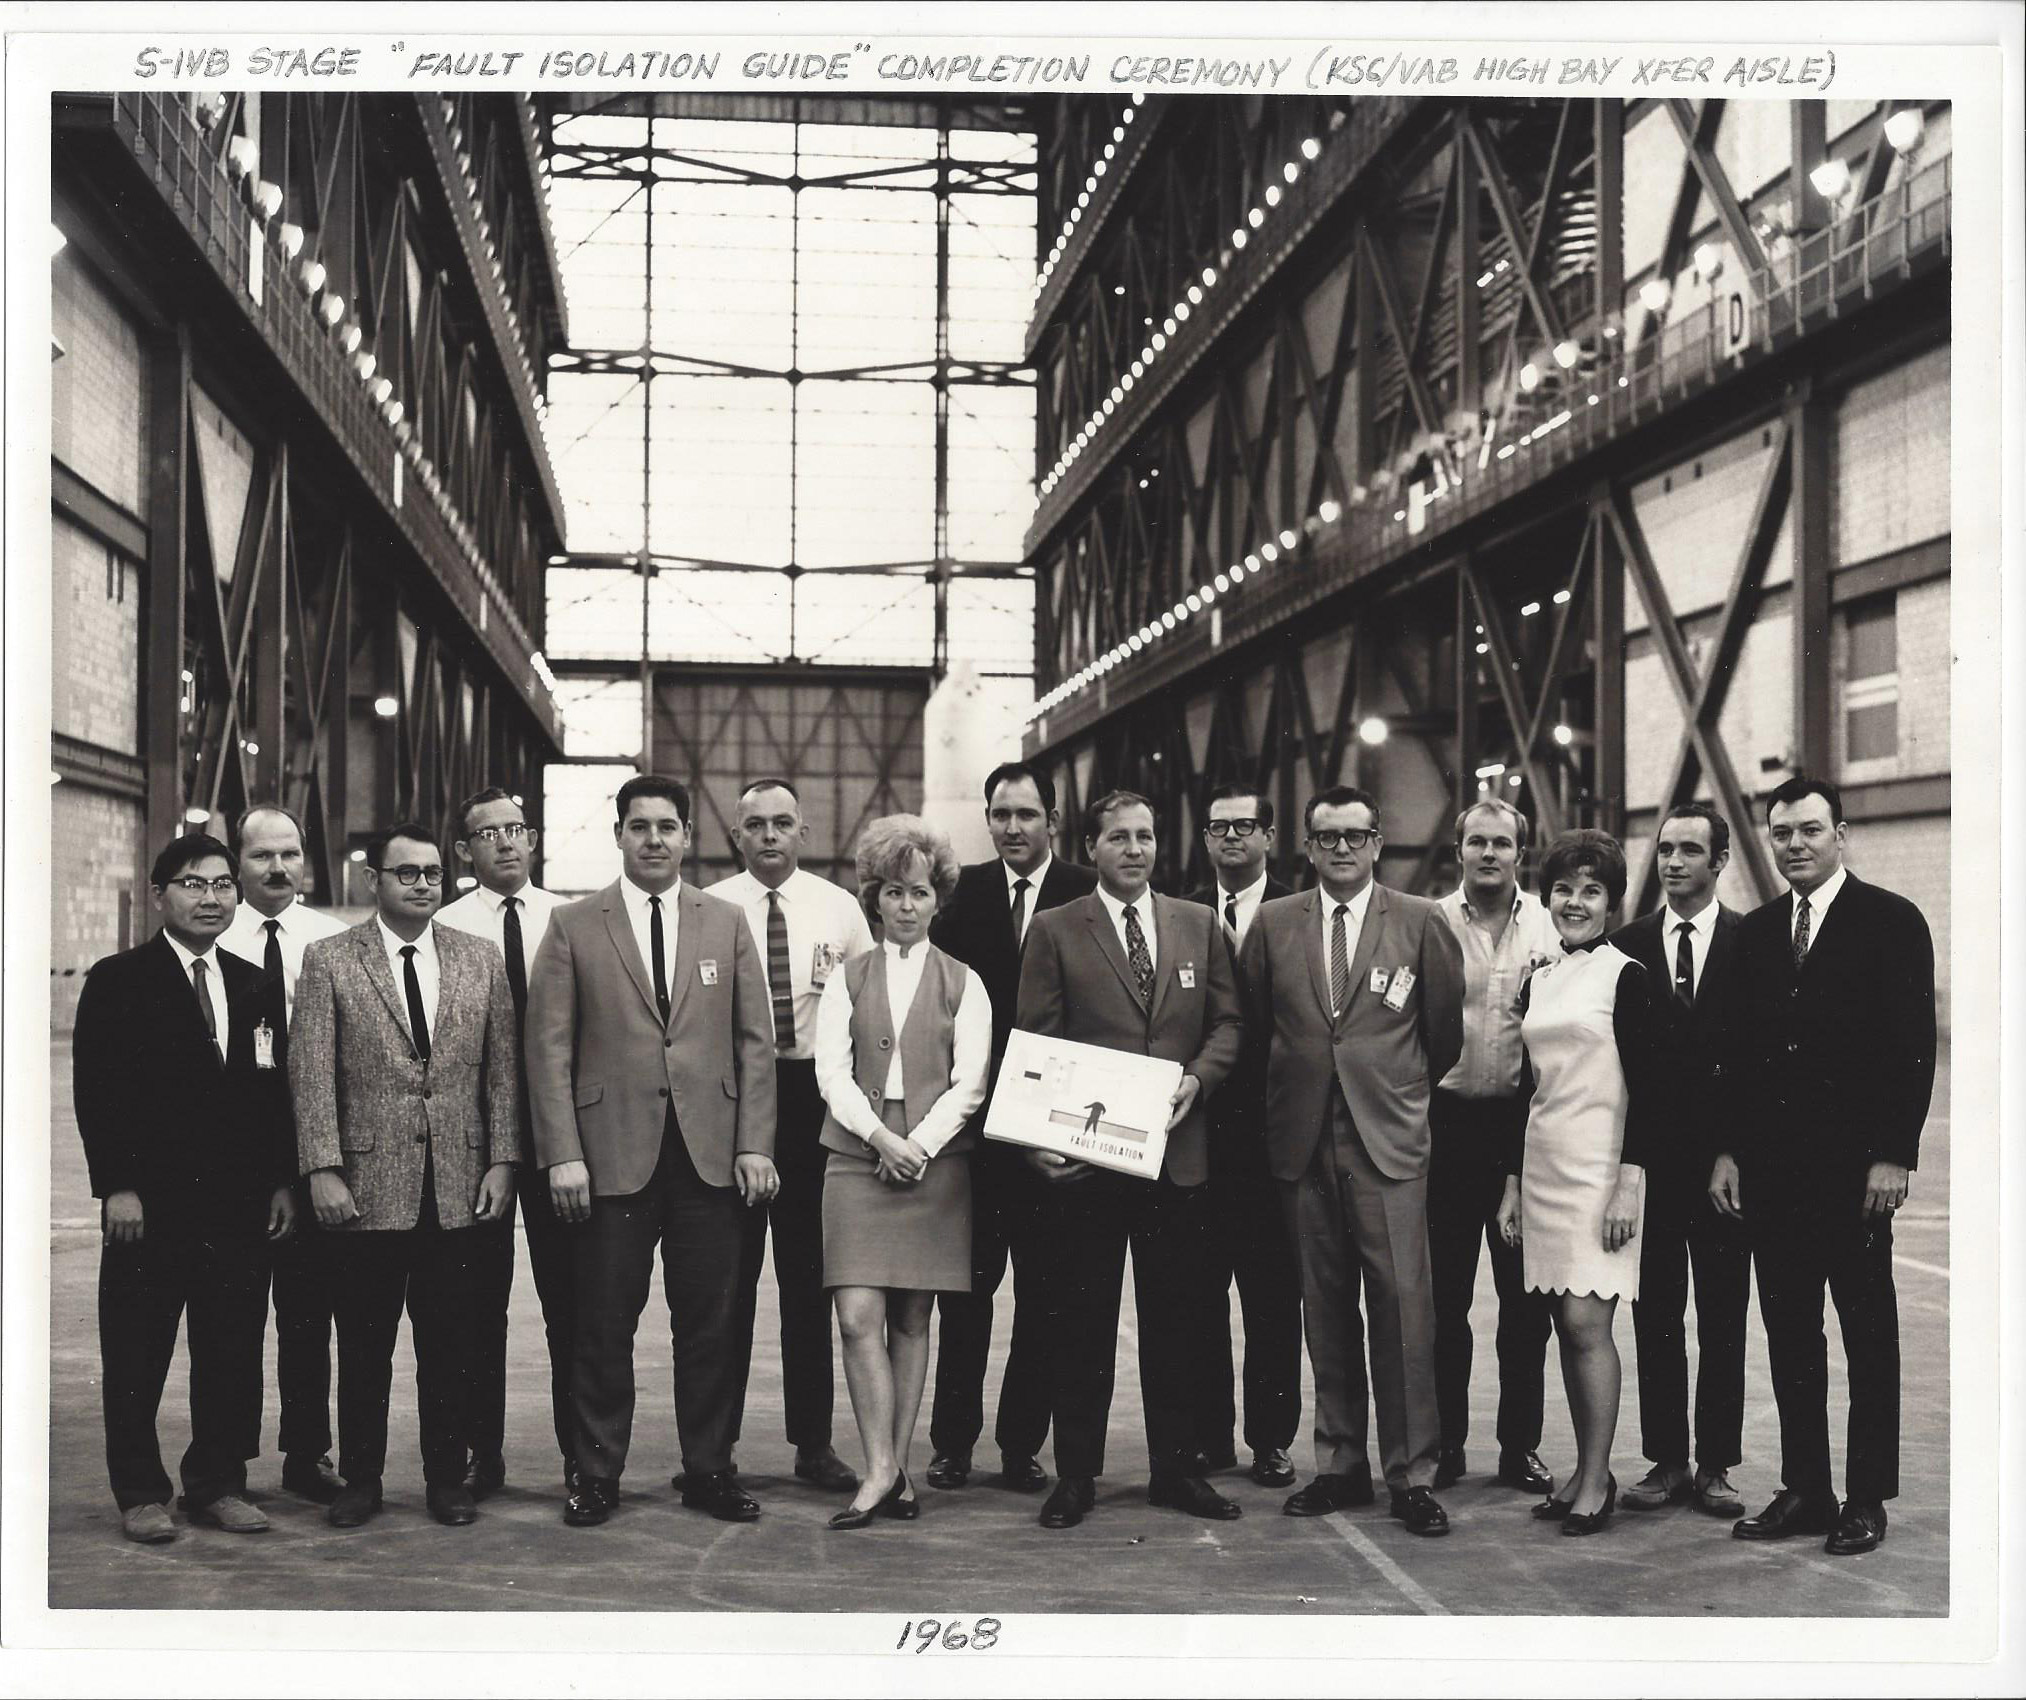 "Group photo of personnel who assisted in production of the ""Fault Isolation"" document that was written by five engineers in 1968. This document was to be used for automating troubleshooting on the various systems of the Saturn V third stage called S-IVB built by MDAC. Jim was one of the five engineers responsible for producing description and schematics for the J2 engine, telemetry, and measuring systems. Photo taken in the transfer aisle of the massive Vehicle Assembly Building at KSC."